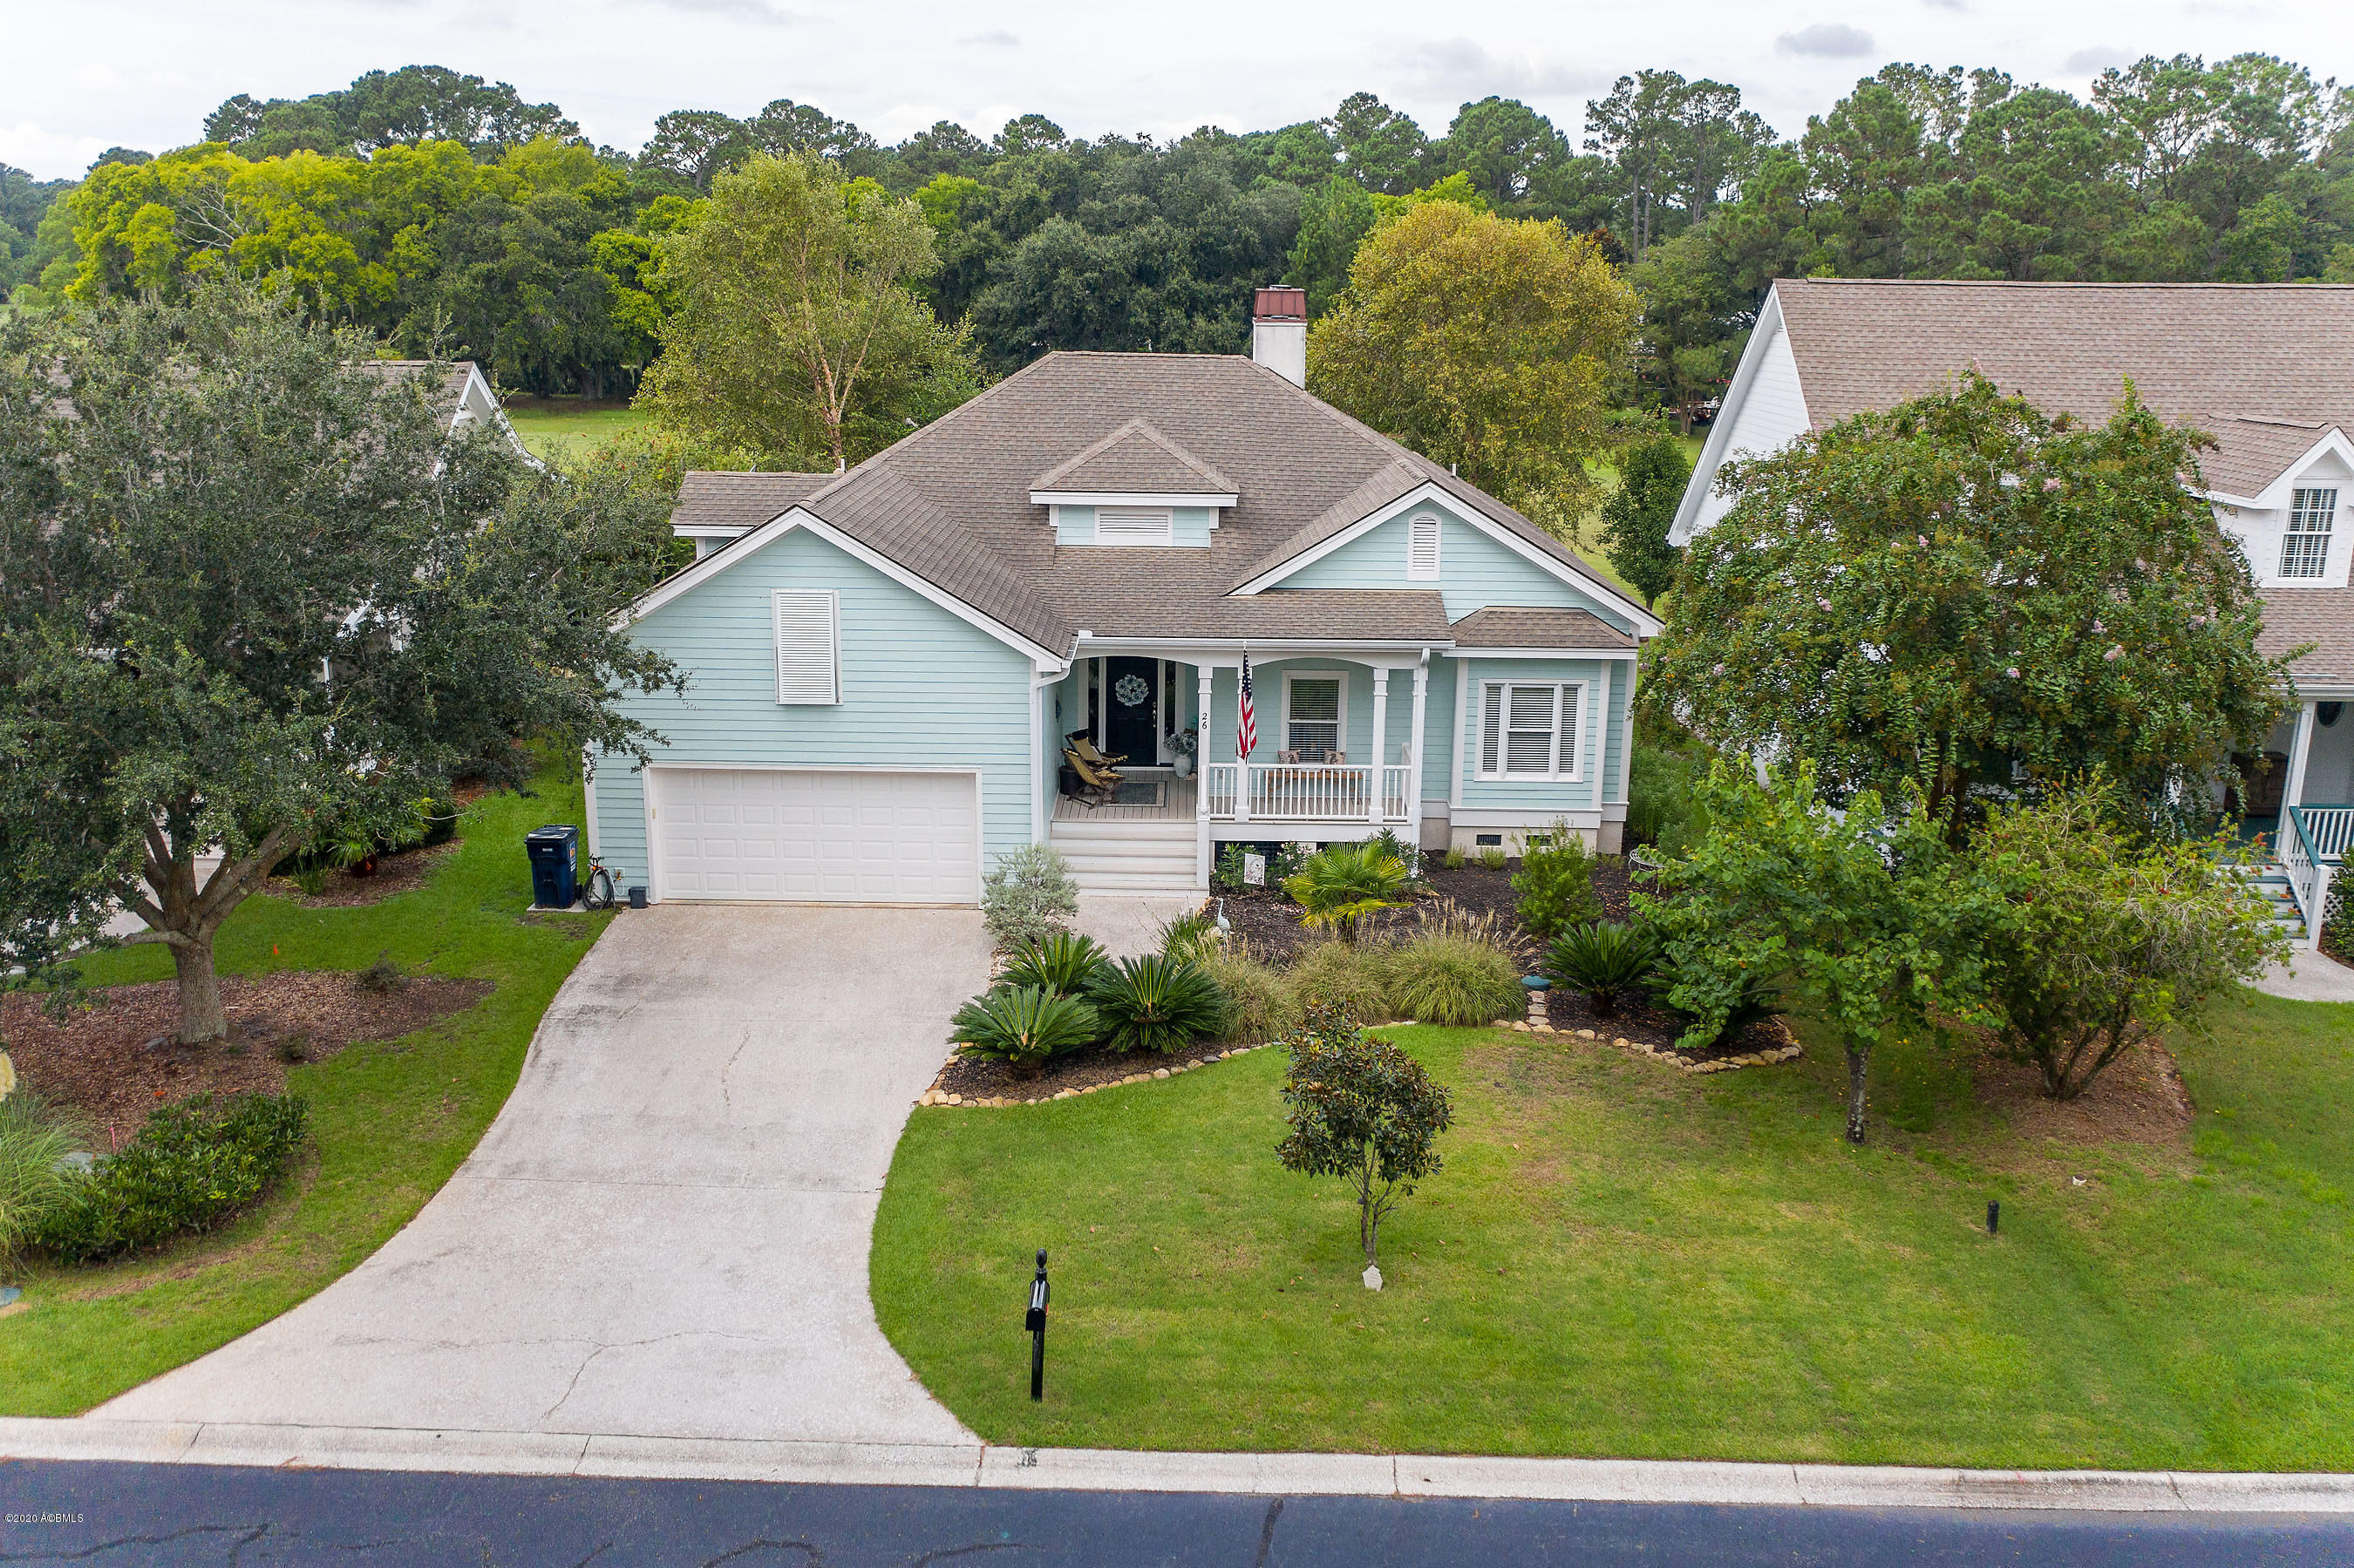 Photo of 26 W National Boulevard, Beaufort, SC 29907